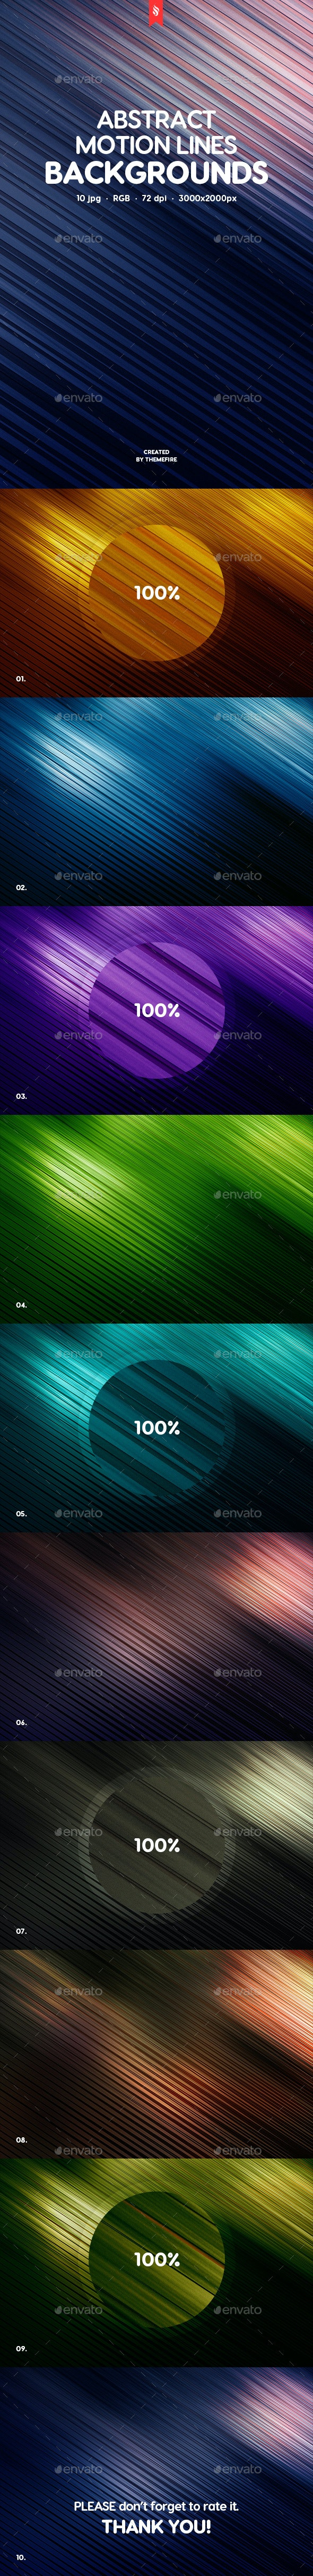 Abstract Motion Lines Backgrounds - Abstract Backgrounds